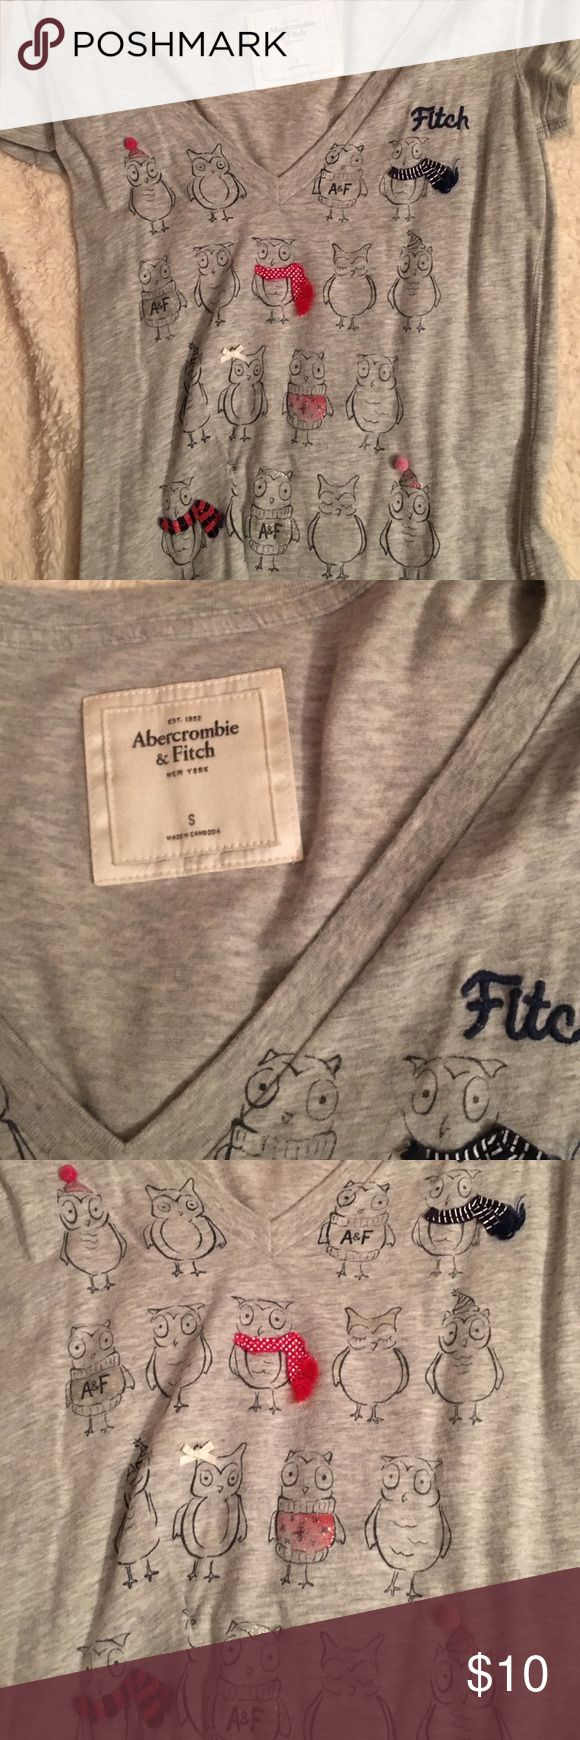 Abercrombie and Fitch t shirt Grey Abercrombie and Fitch Tshirt with an owl pattern super cute for back to school Abercrombie & Fitch Tops Tees - Short Sleeve